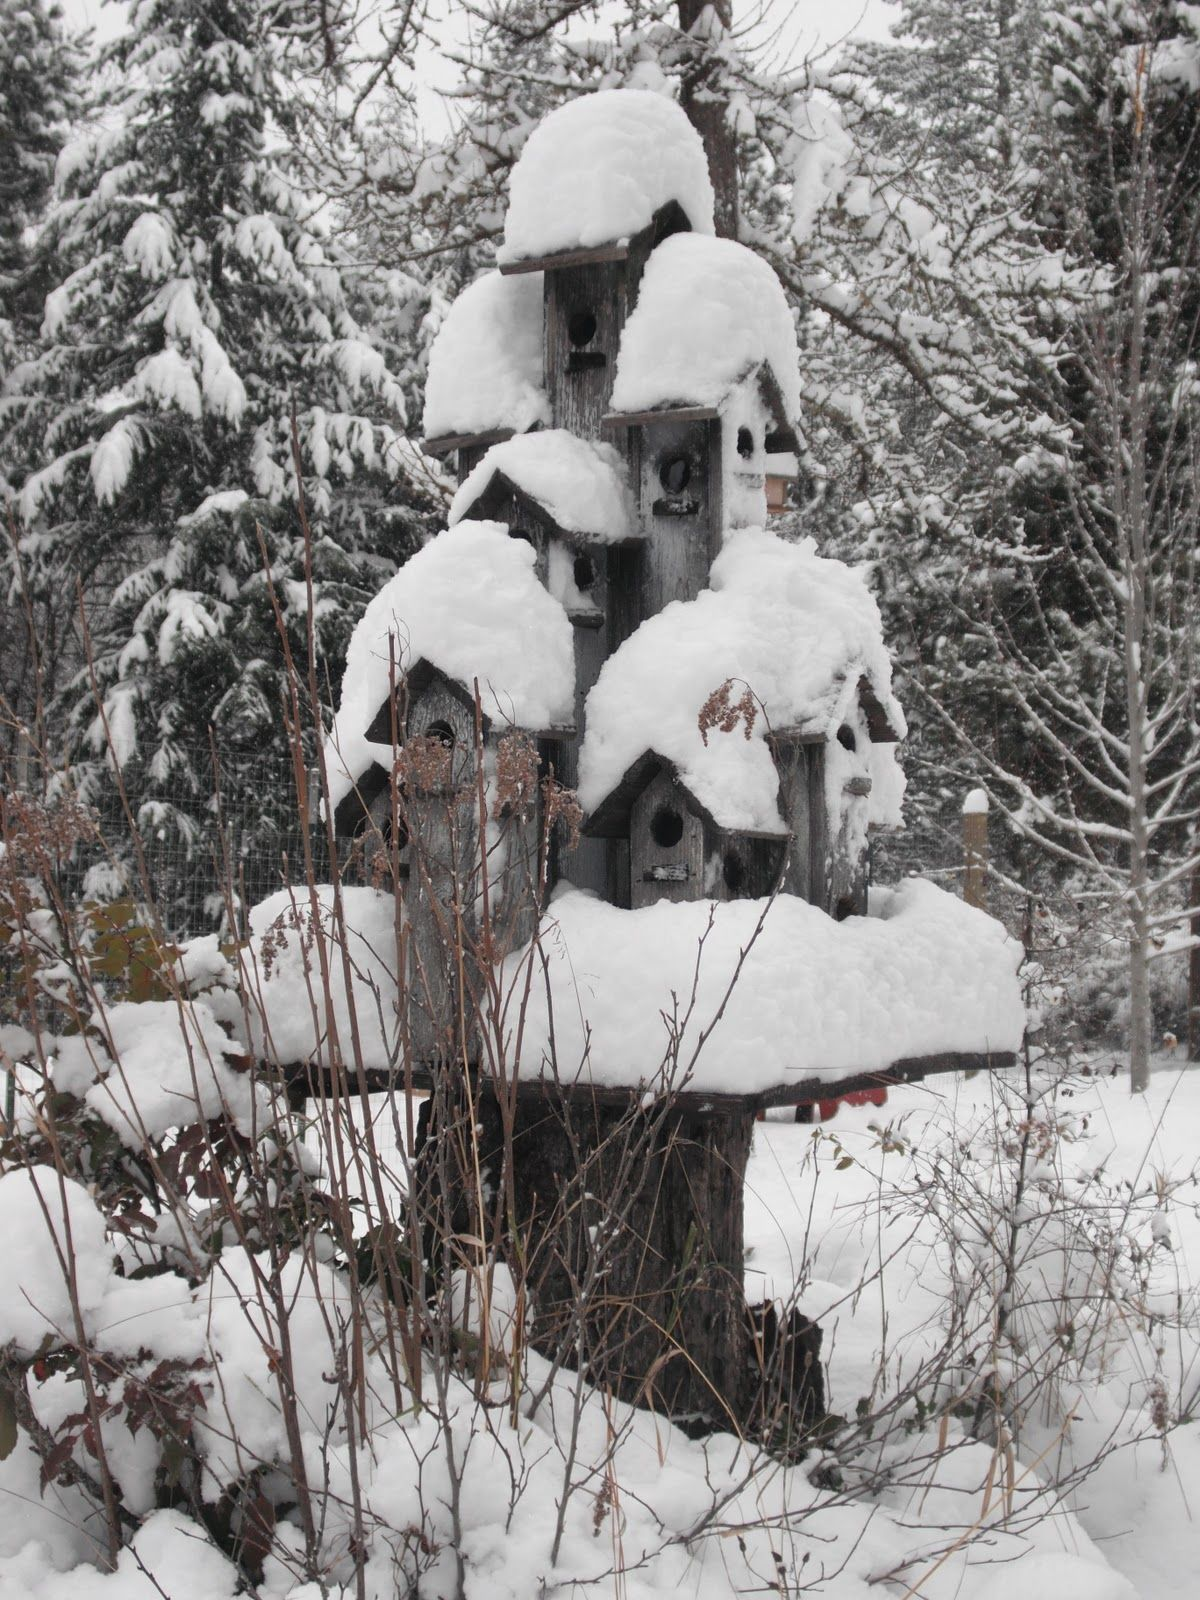 clustered bird houses on an old tree stump gardening birds